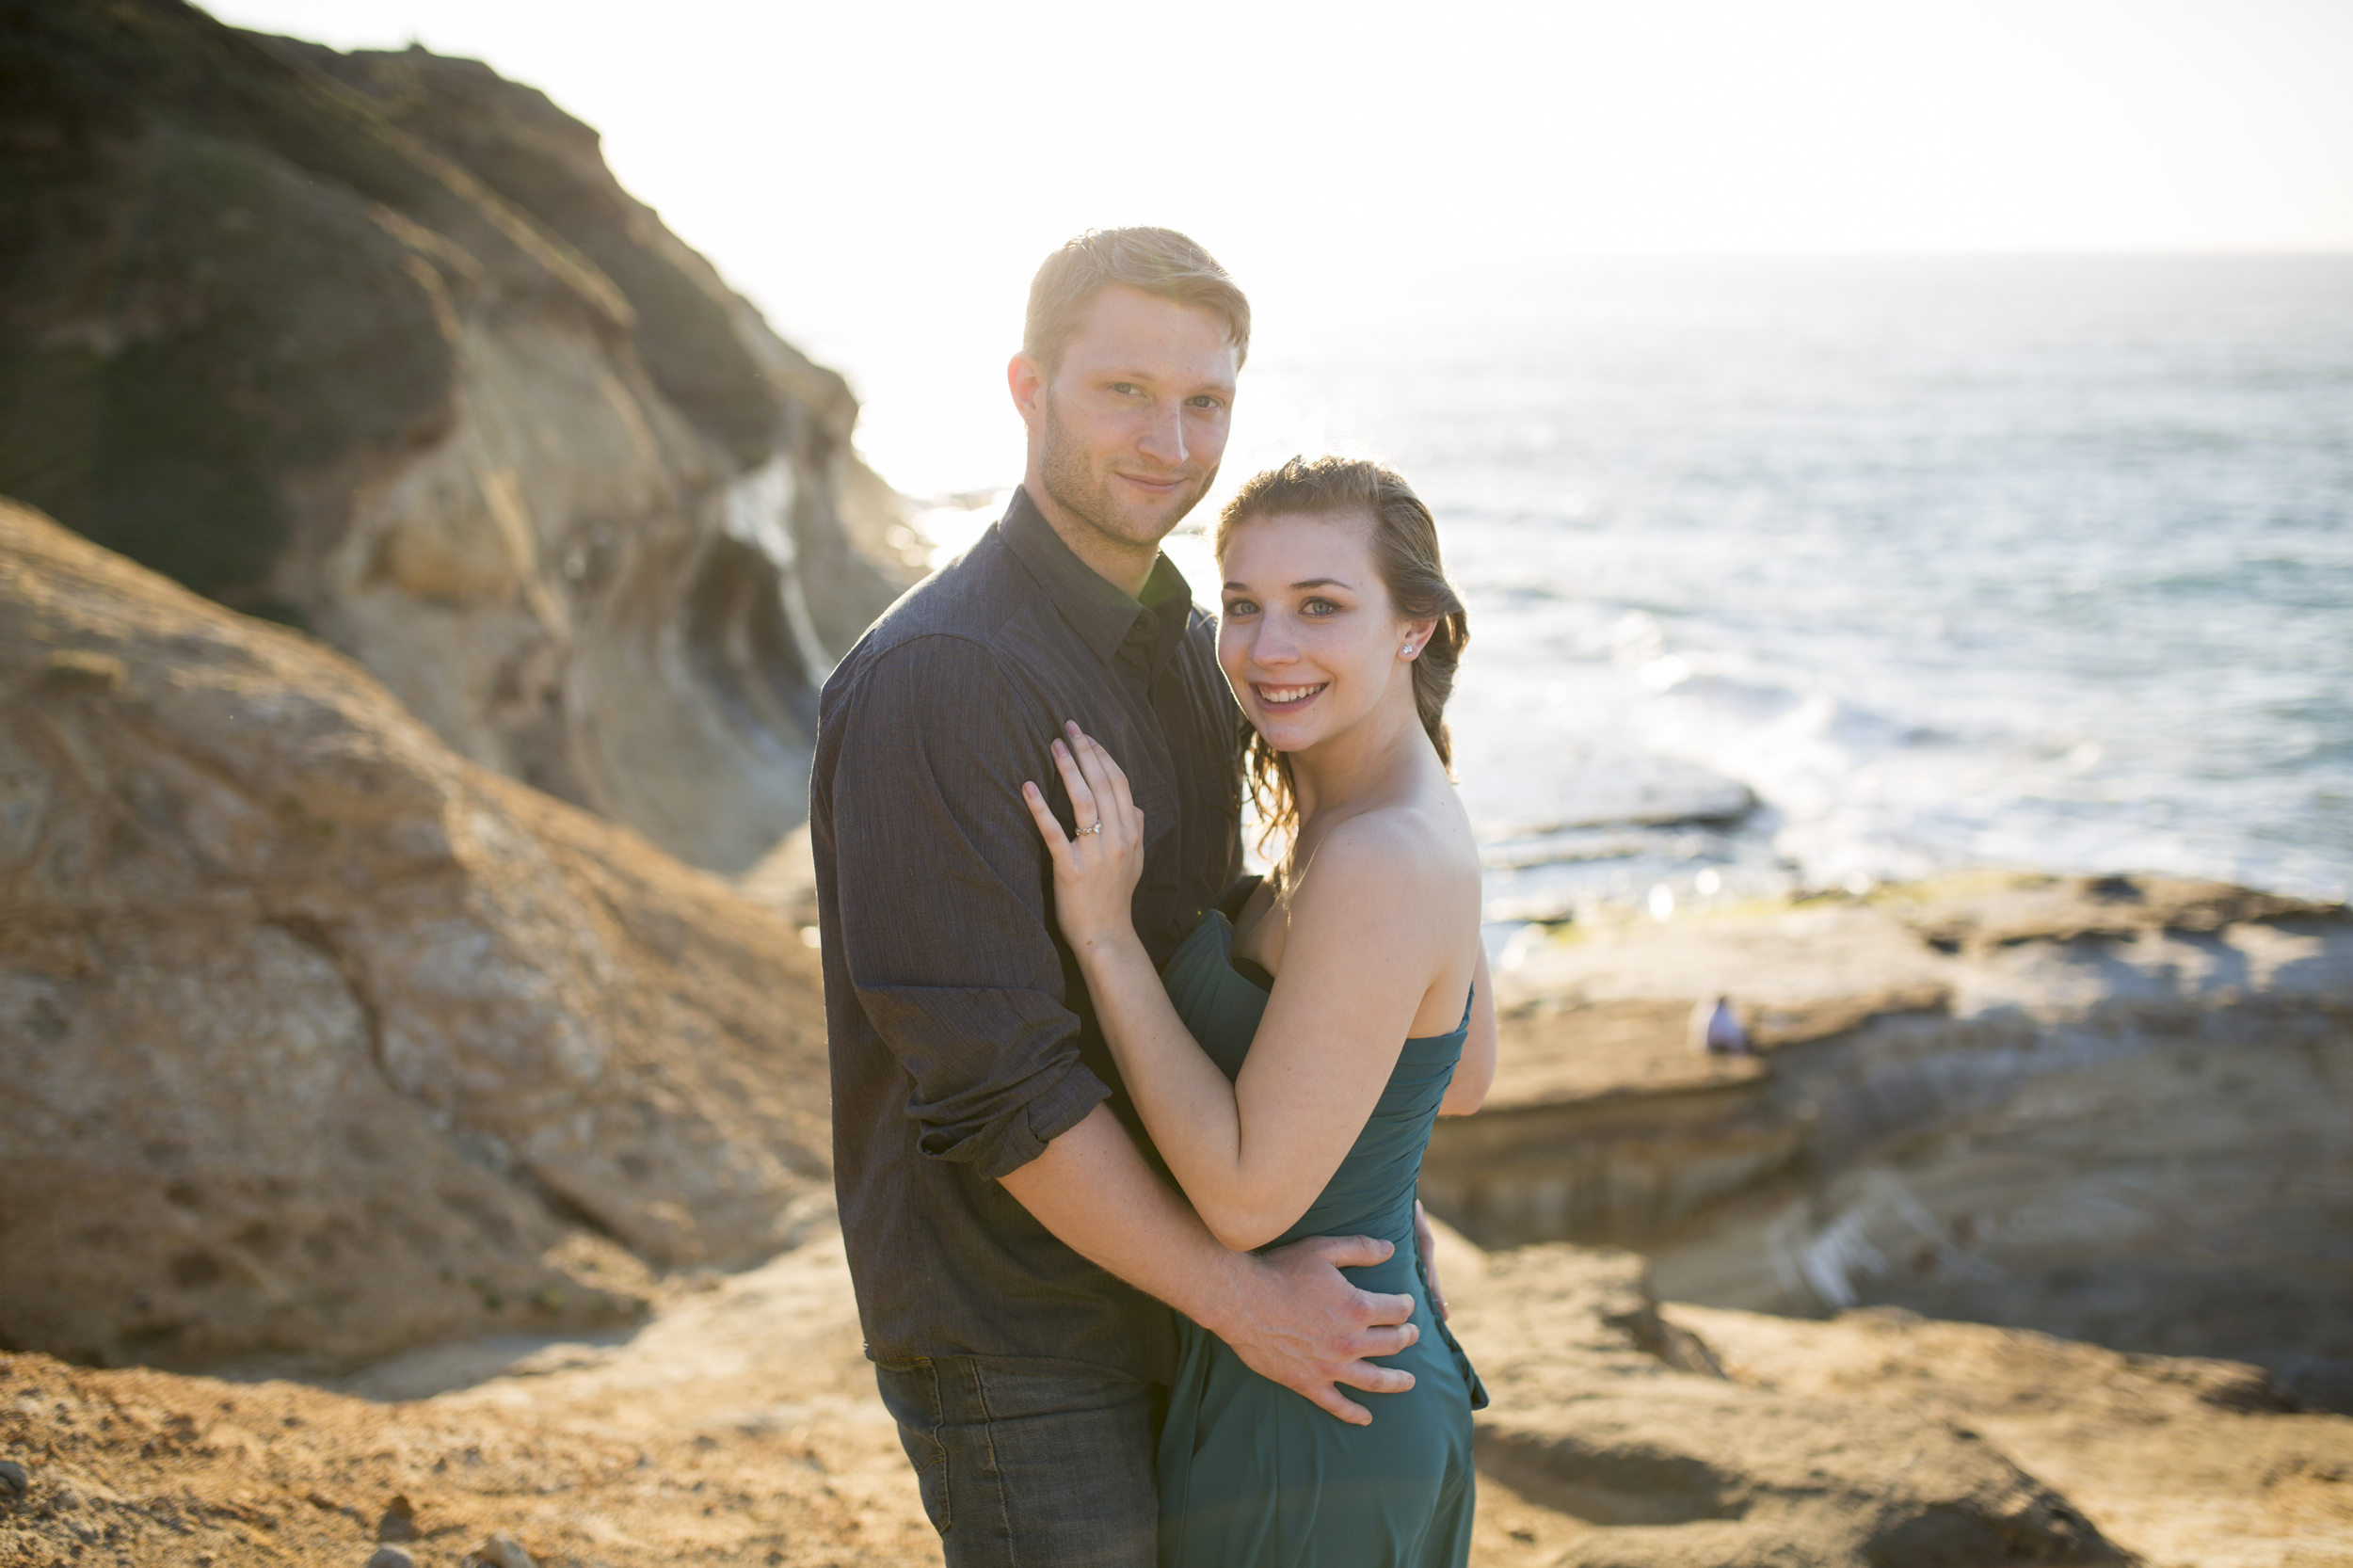 seattle-engagement-cape-kiawanda-oregon-portraits-coast-sunset-0027.jpg